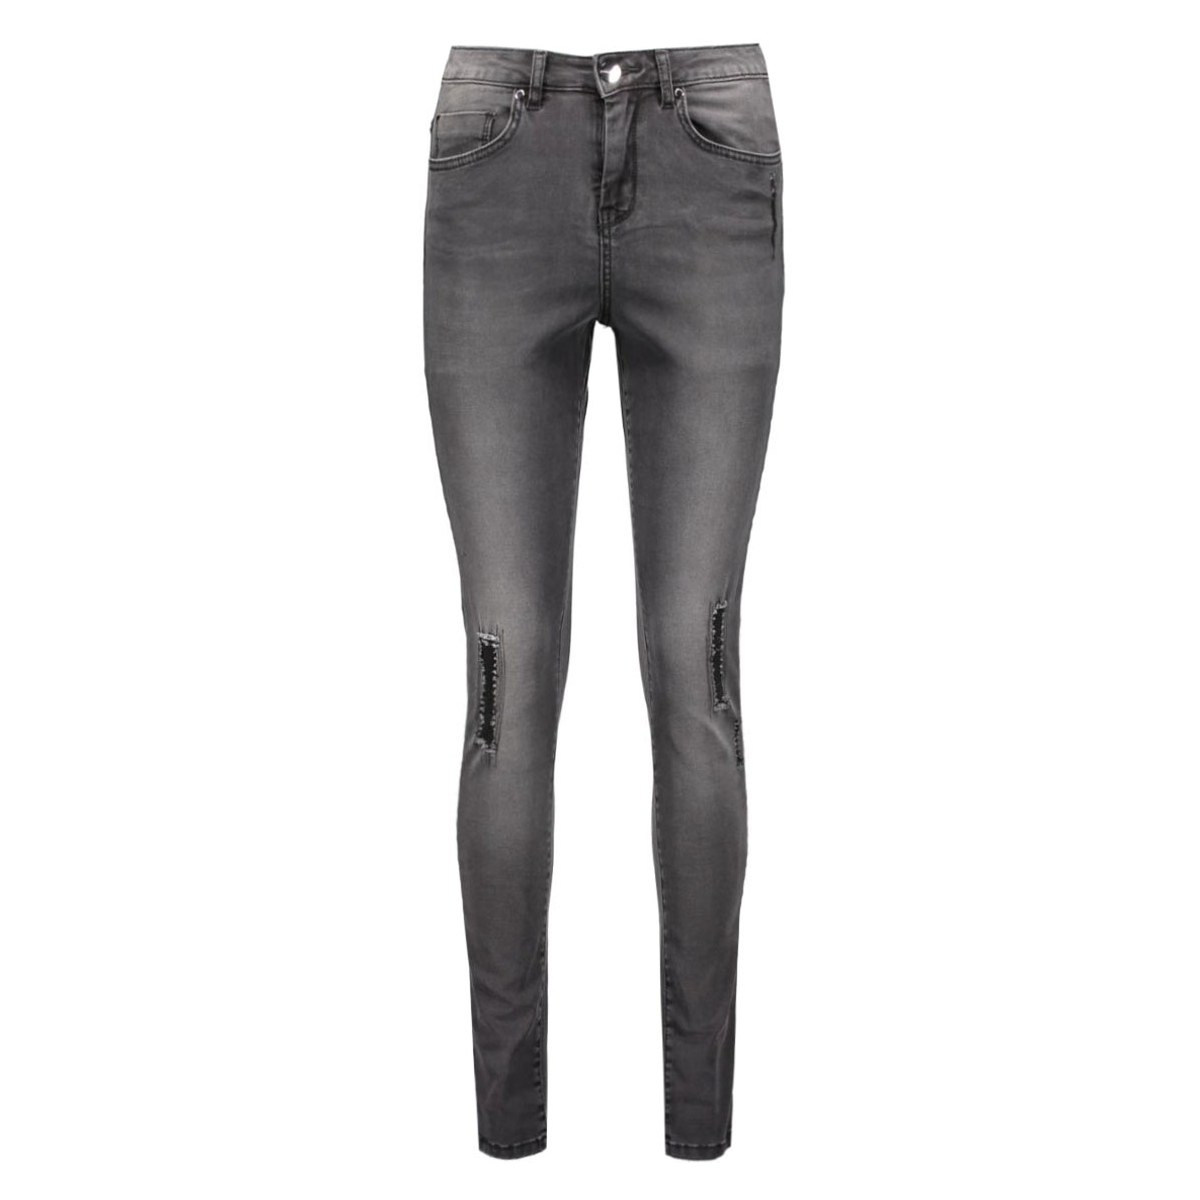 6205046.00.75 tom tailor jeans 1200